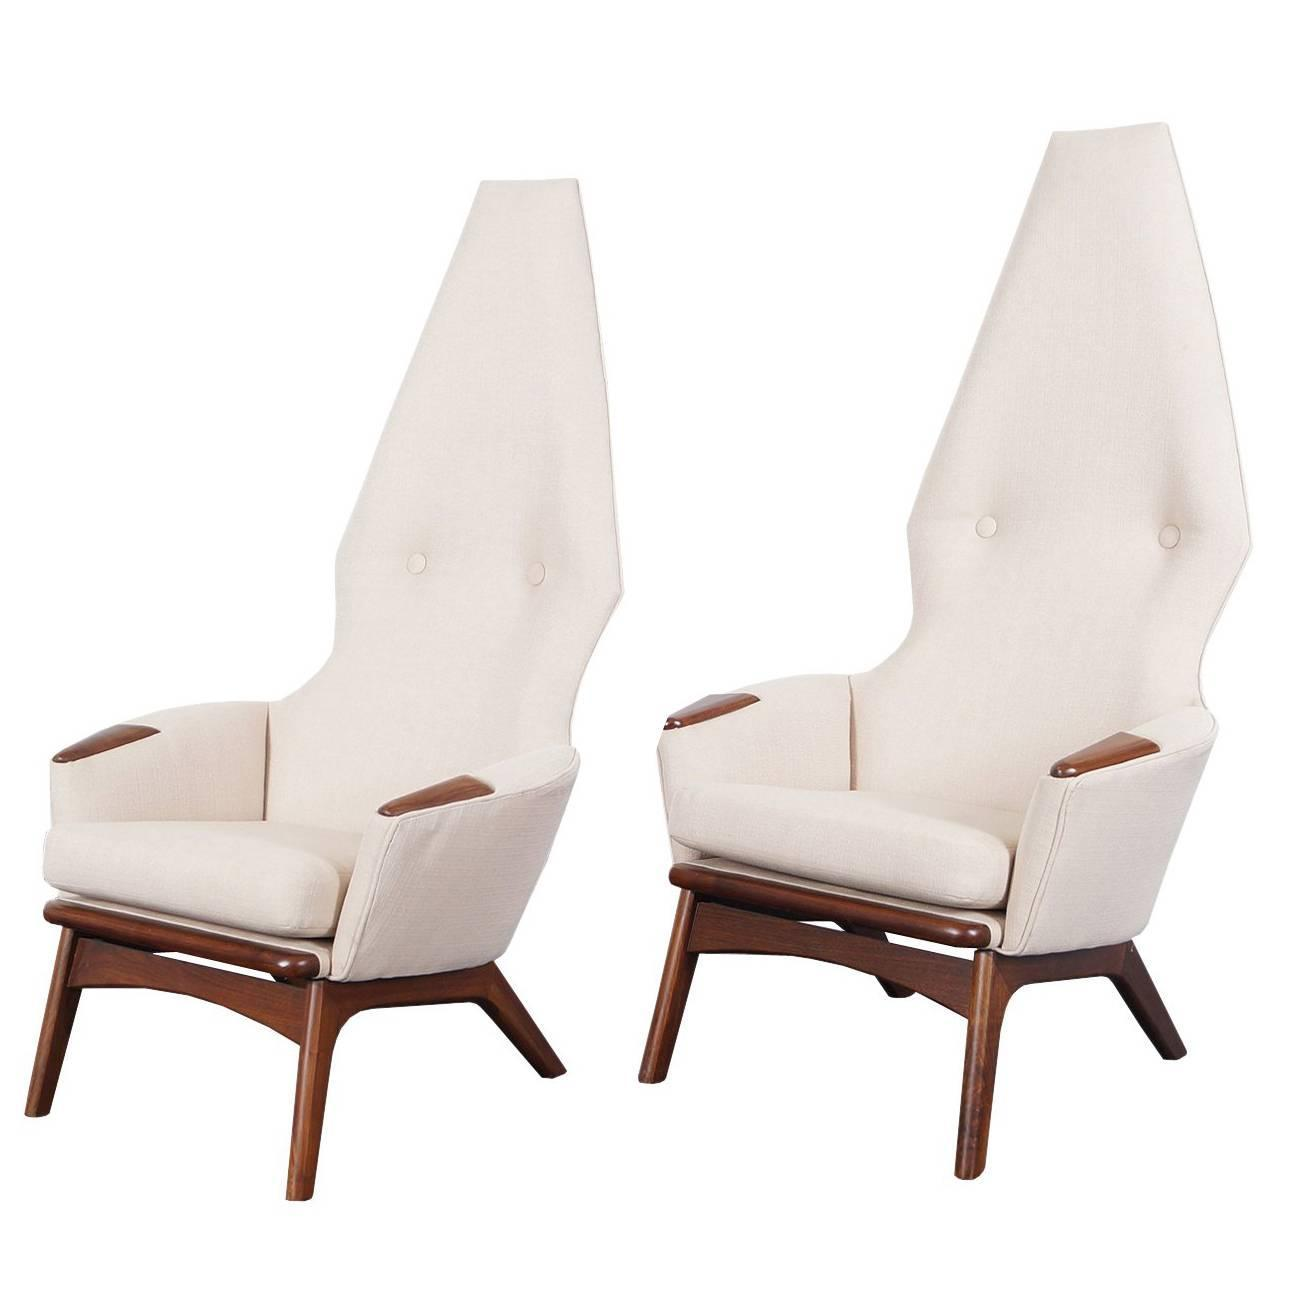 Vintage High Back Lounge Chairs By Adrian Pearsall For Sale At 1stdibs